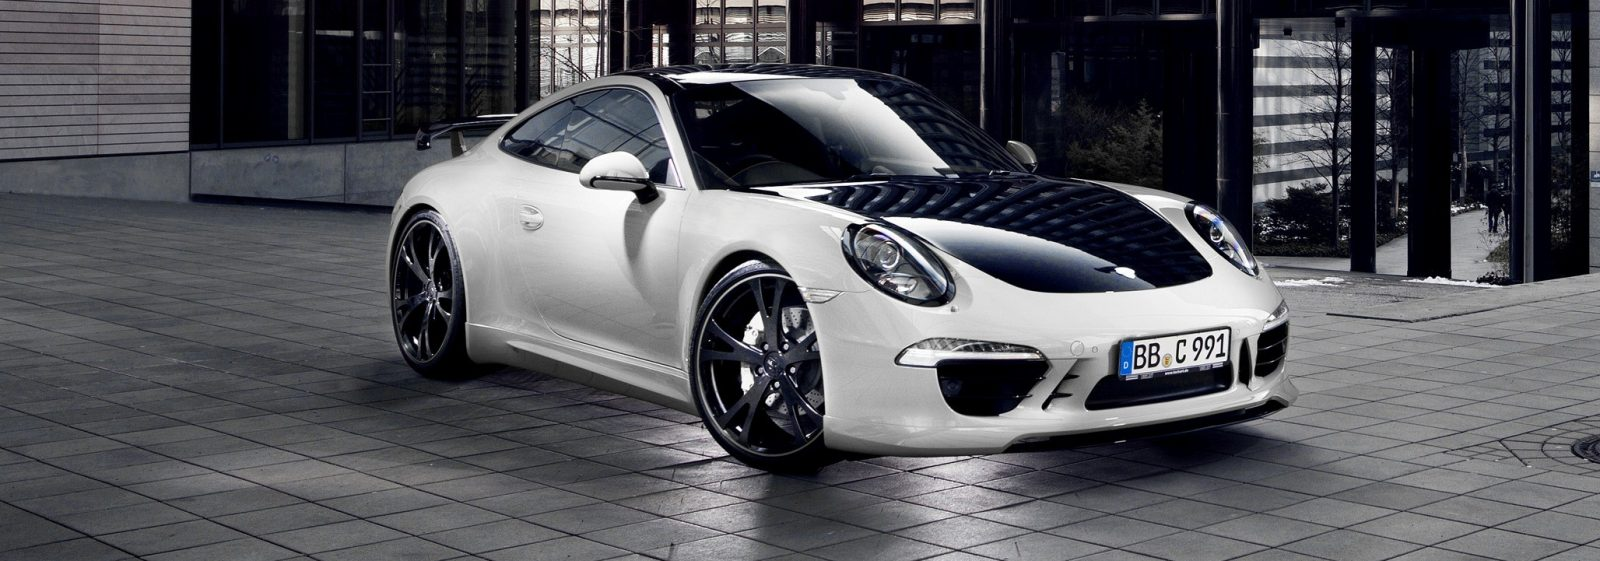 TECHART_for_Porsche_911_C4S_exterior2